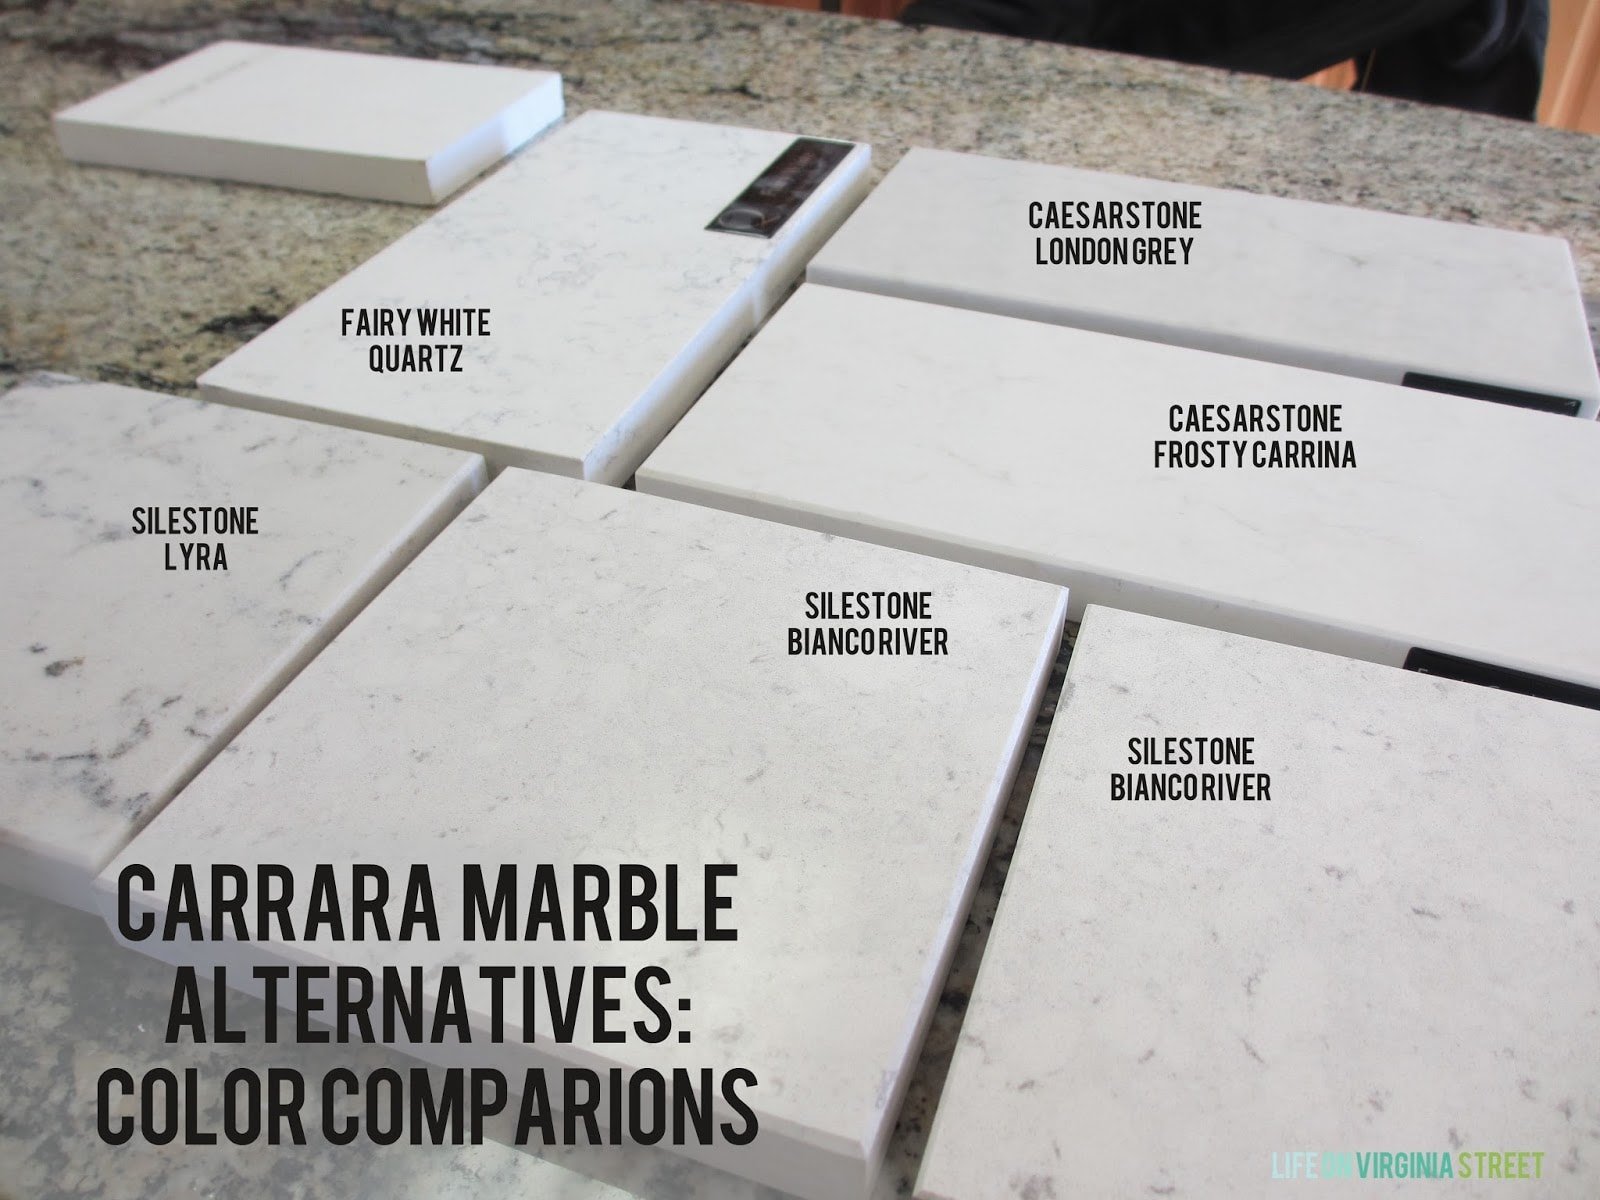 Carrara marble alternatives color comparisons. This is really helpful for finding a more durable alternative!